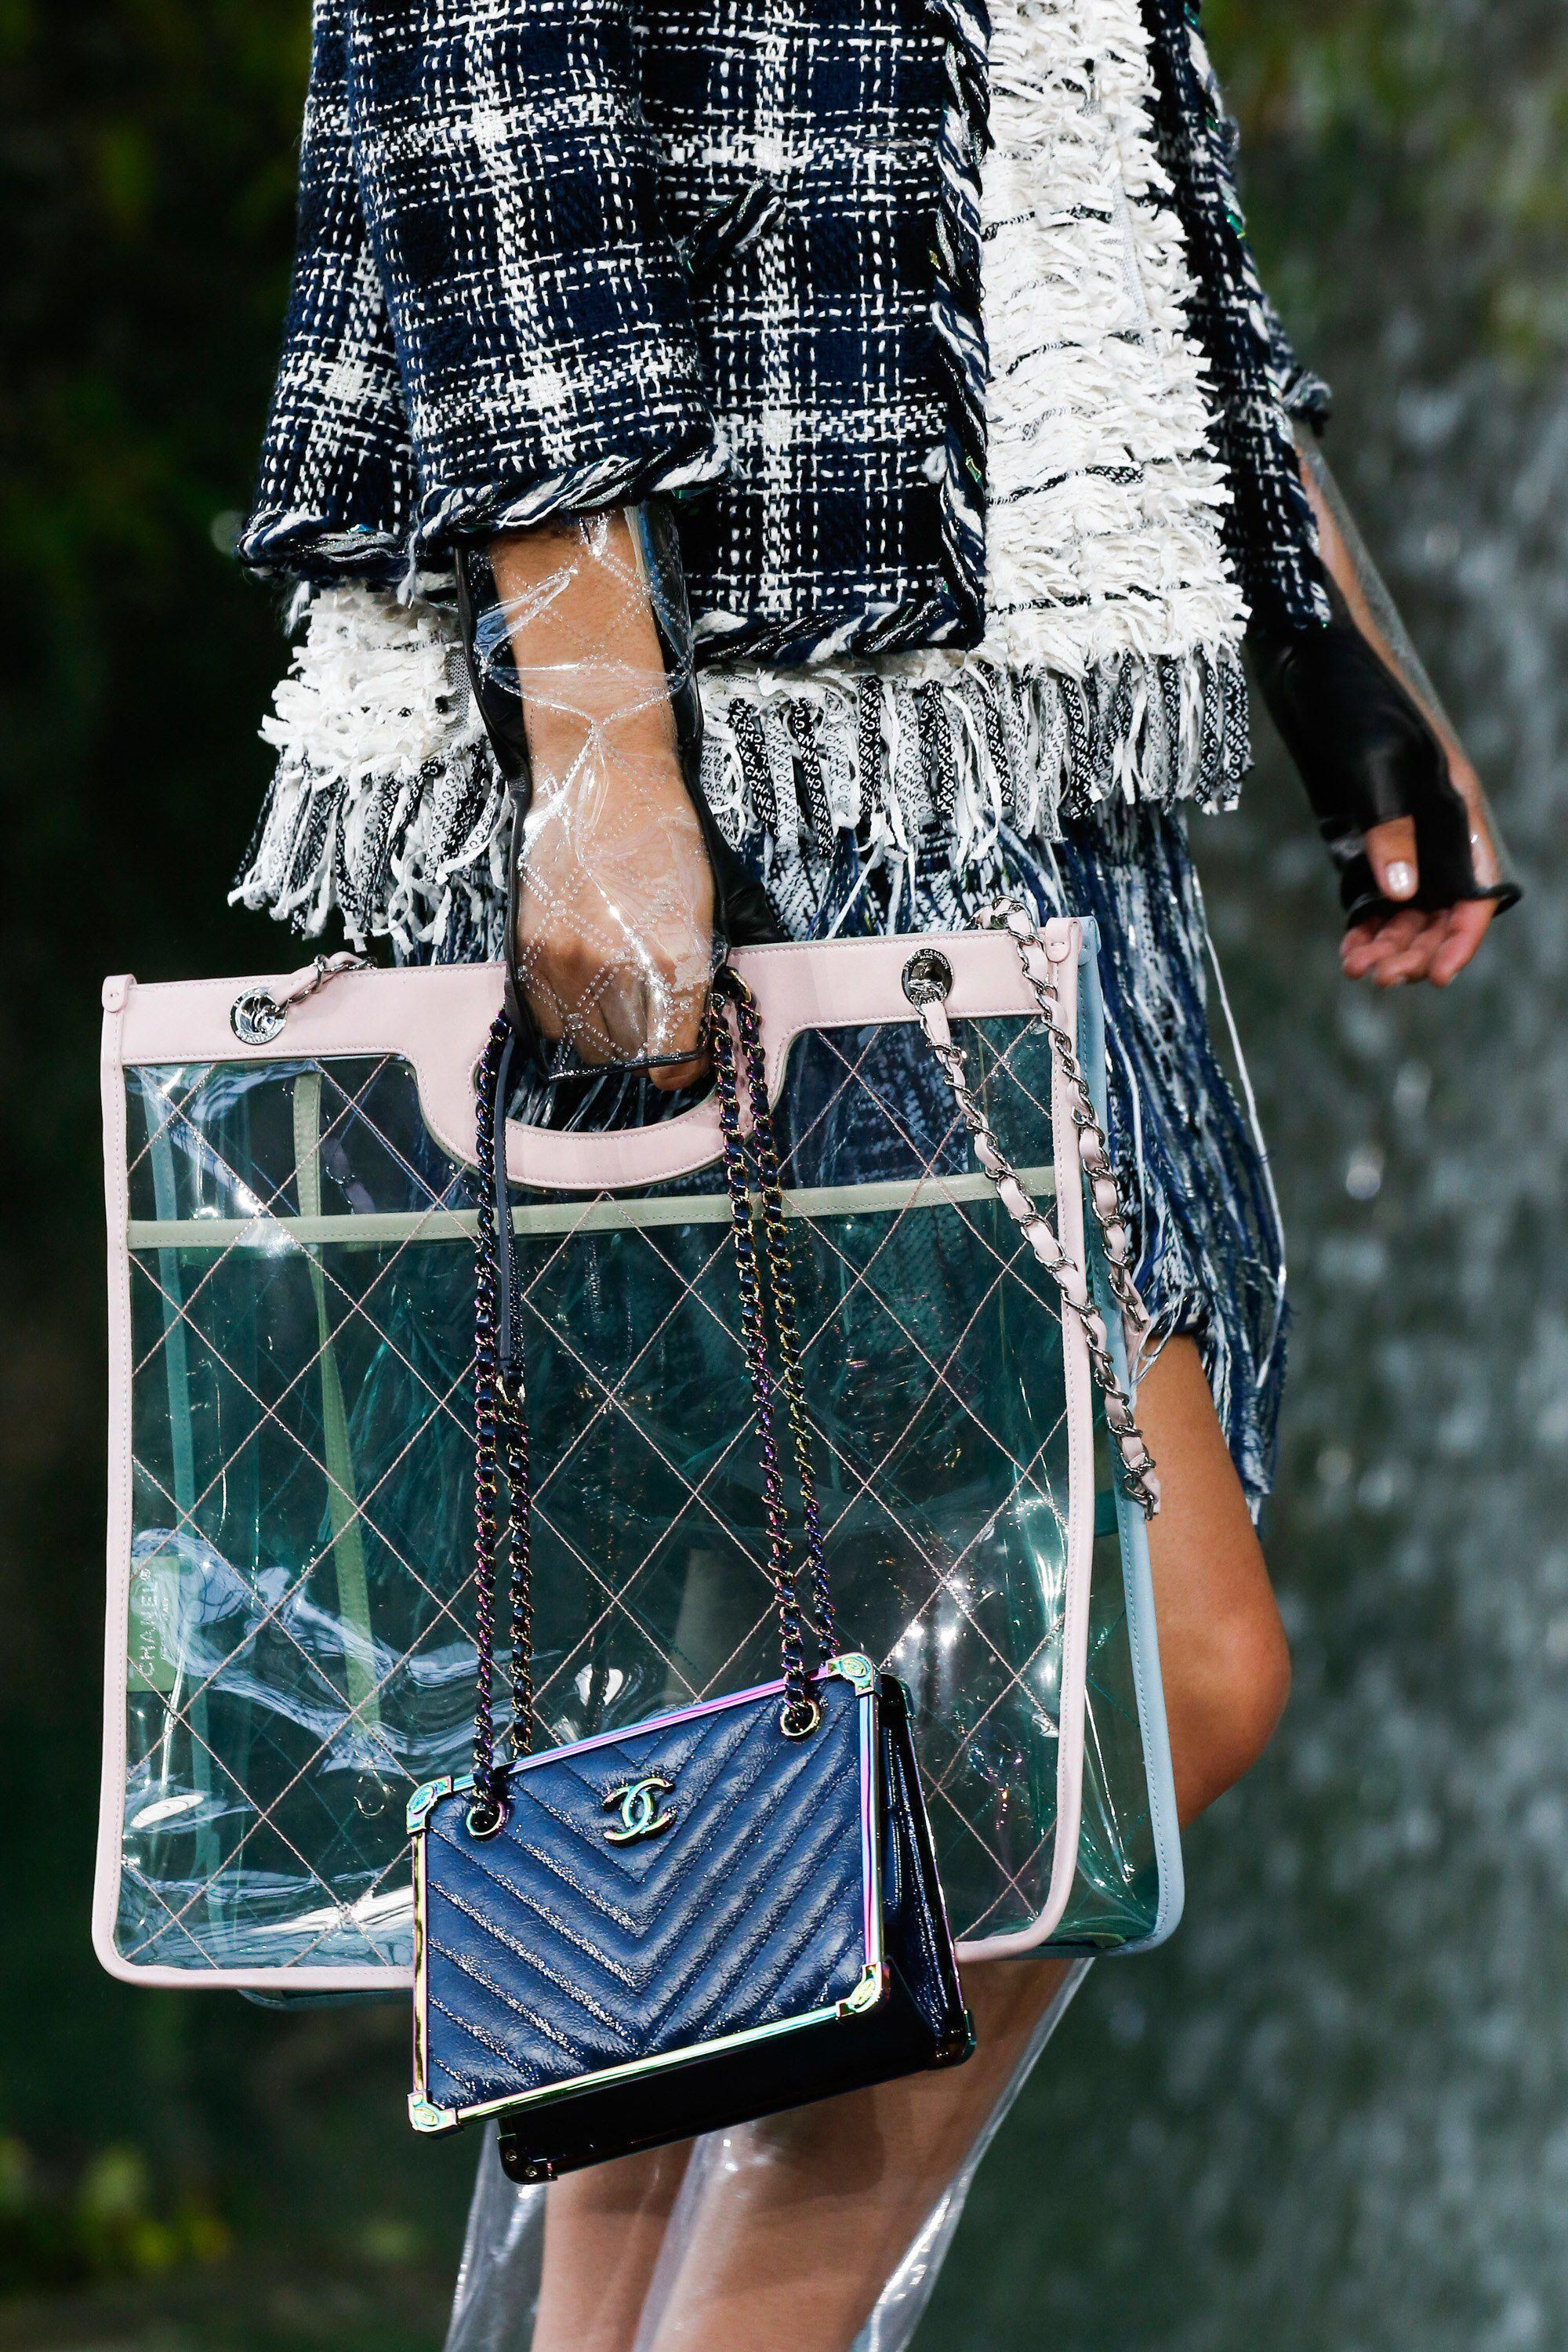 0906b232c97a Chanel Spring 2018 Ready-to-Wear Fashion Show Details  Chanelhandbags